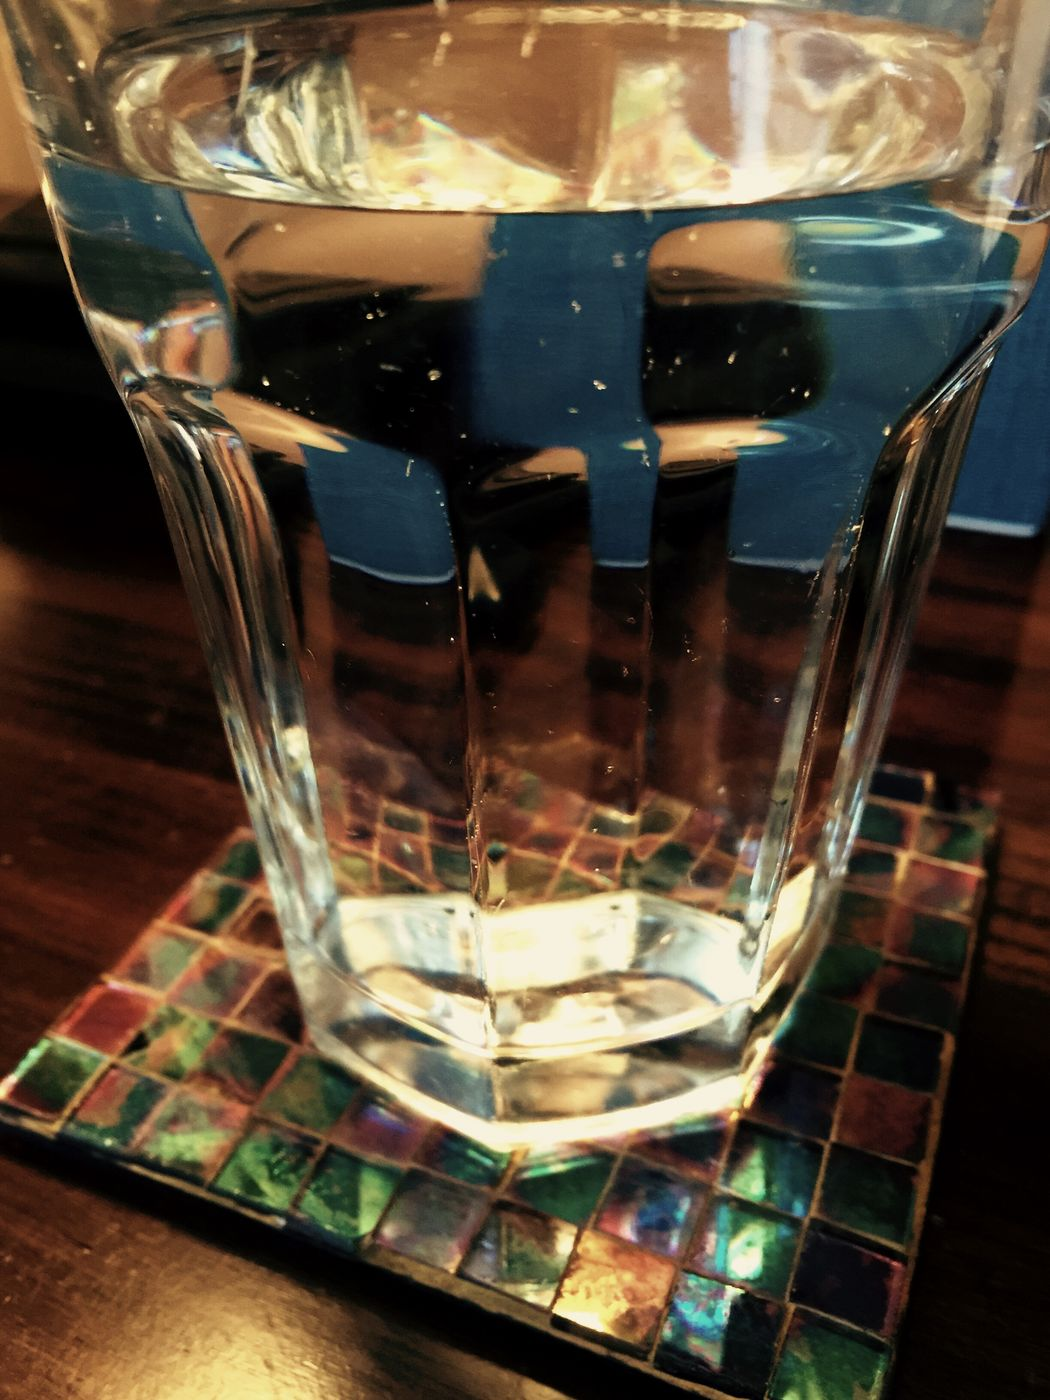 IPhoneography Cindy Greenstein Fine Art Photography Cindy Greenstein Photography Iphonephotography Iphone 6 Plus IPhoneArtism Iphone6 IPhone 6+ Water Reflection Water Glass Coaster Glass On Coaster Mosaic Tiles On Nightstand